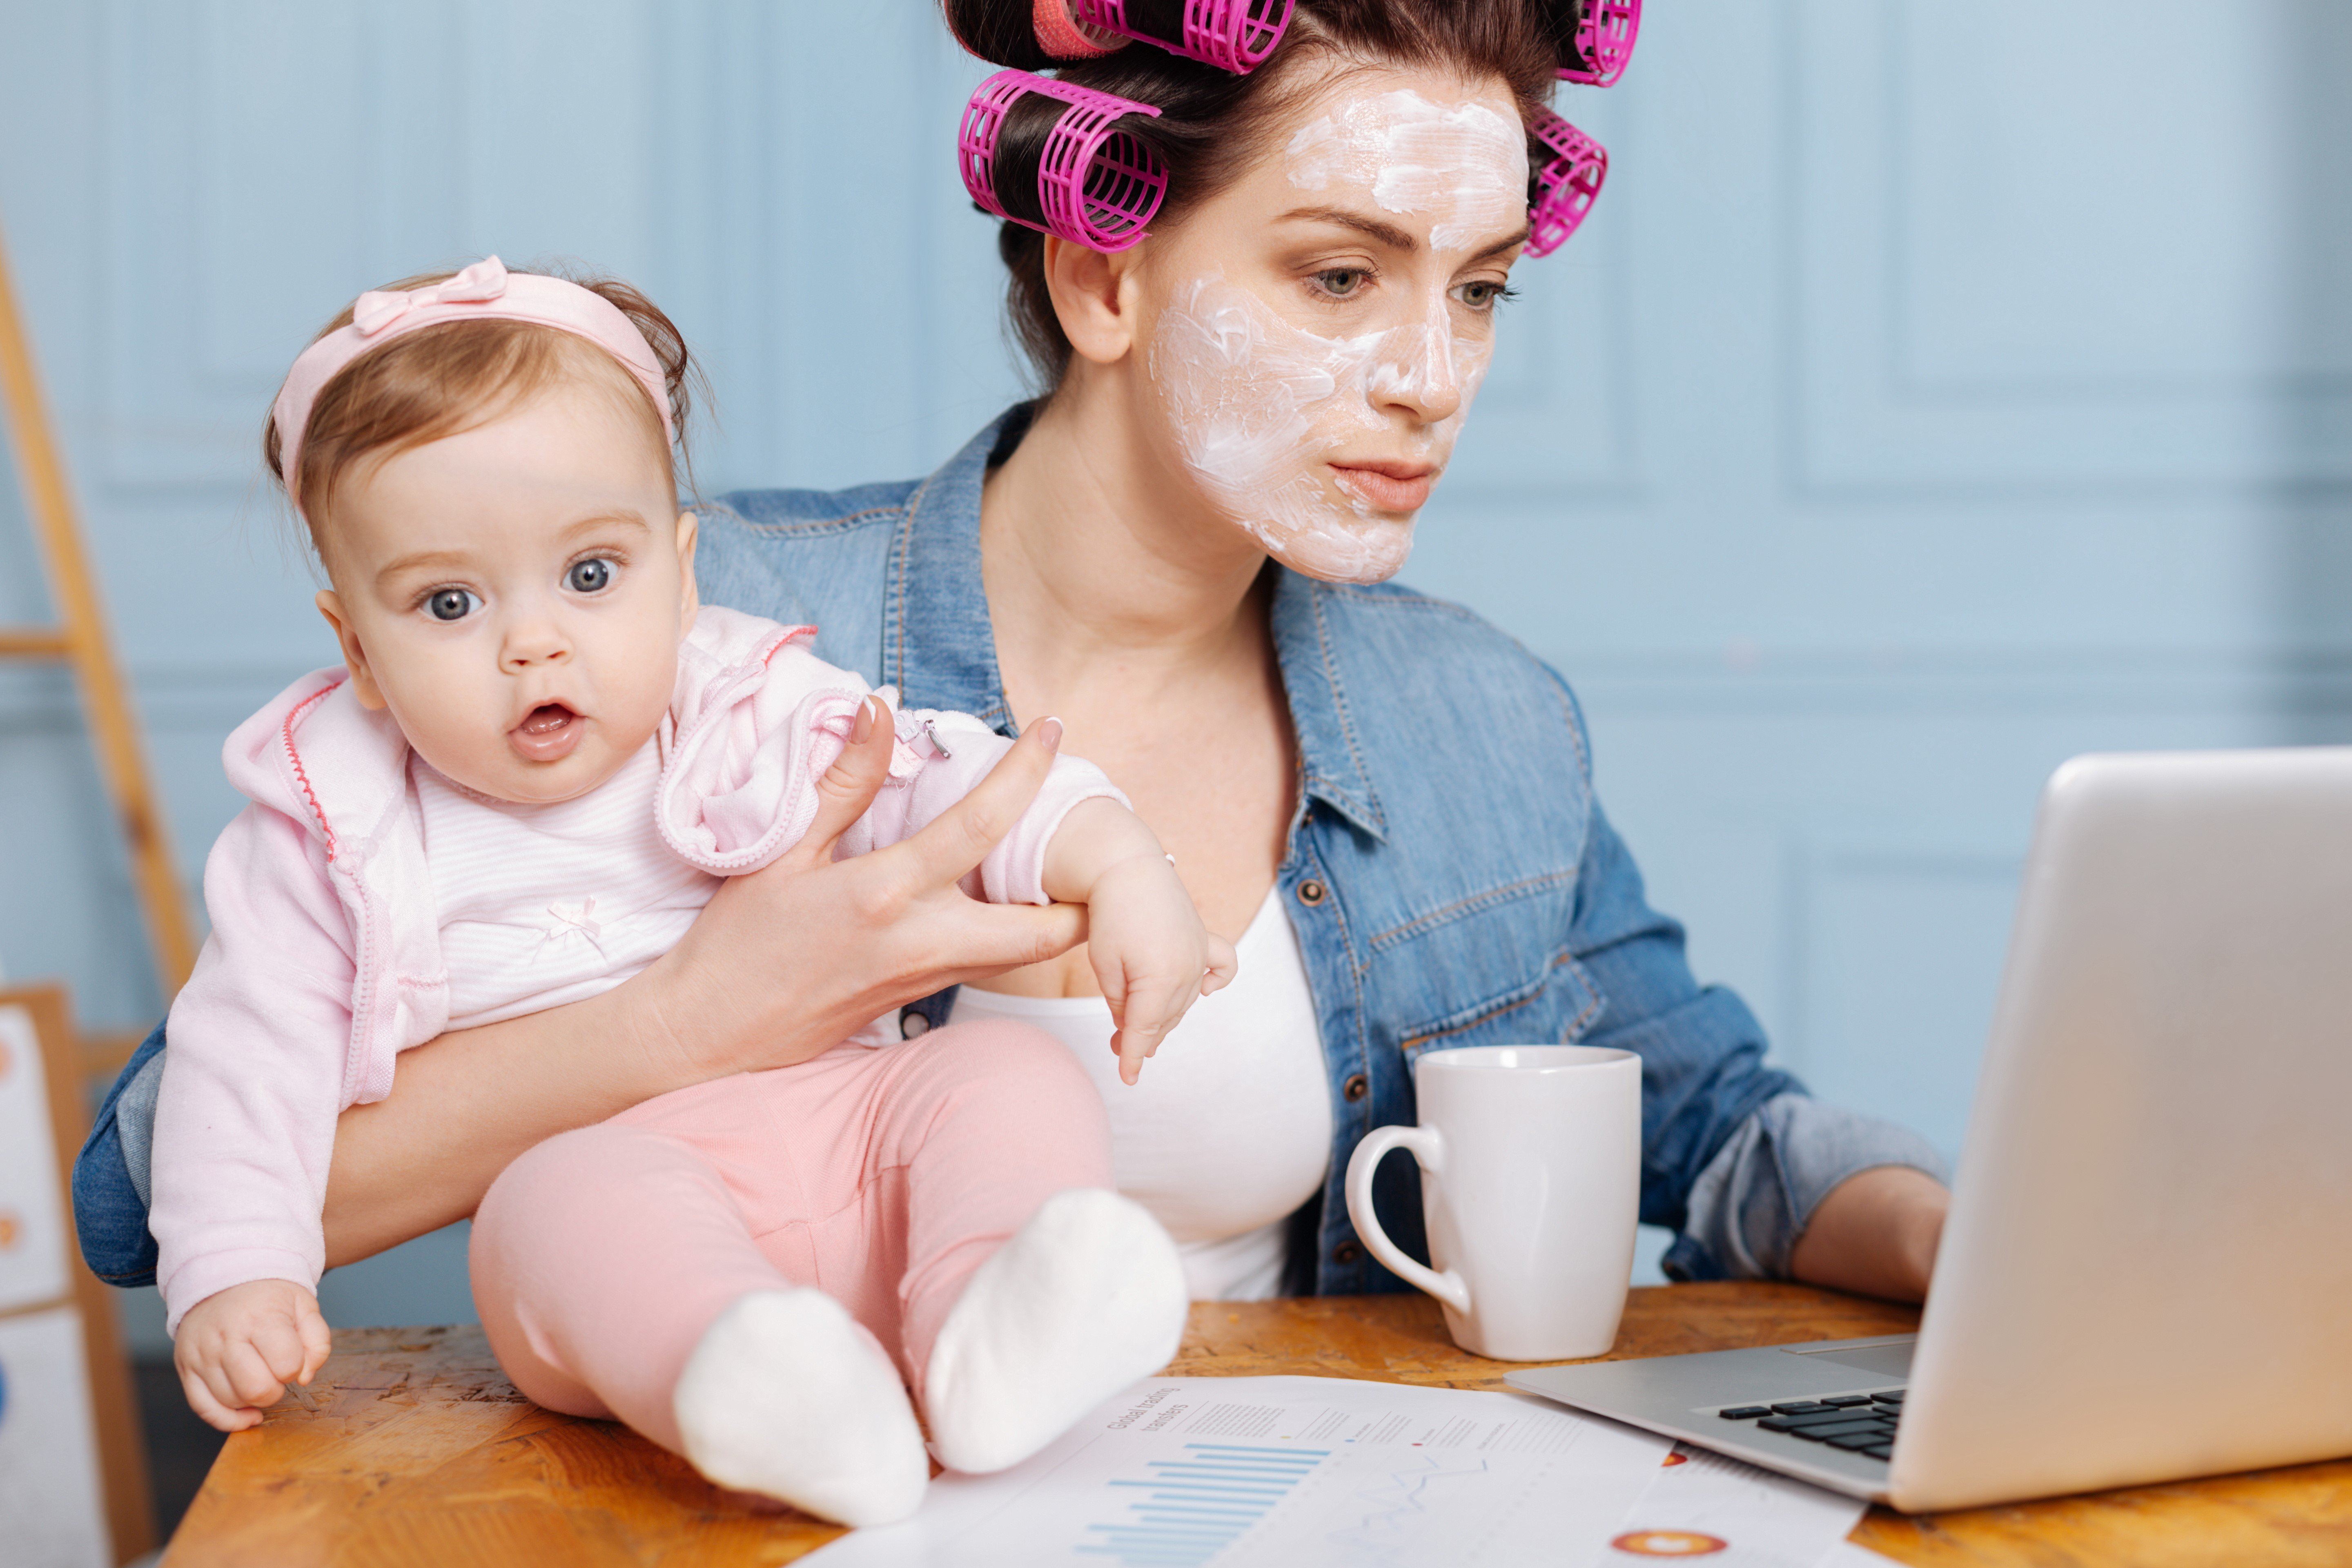 A stay at home mom shops for her new mobile home online.